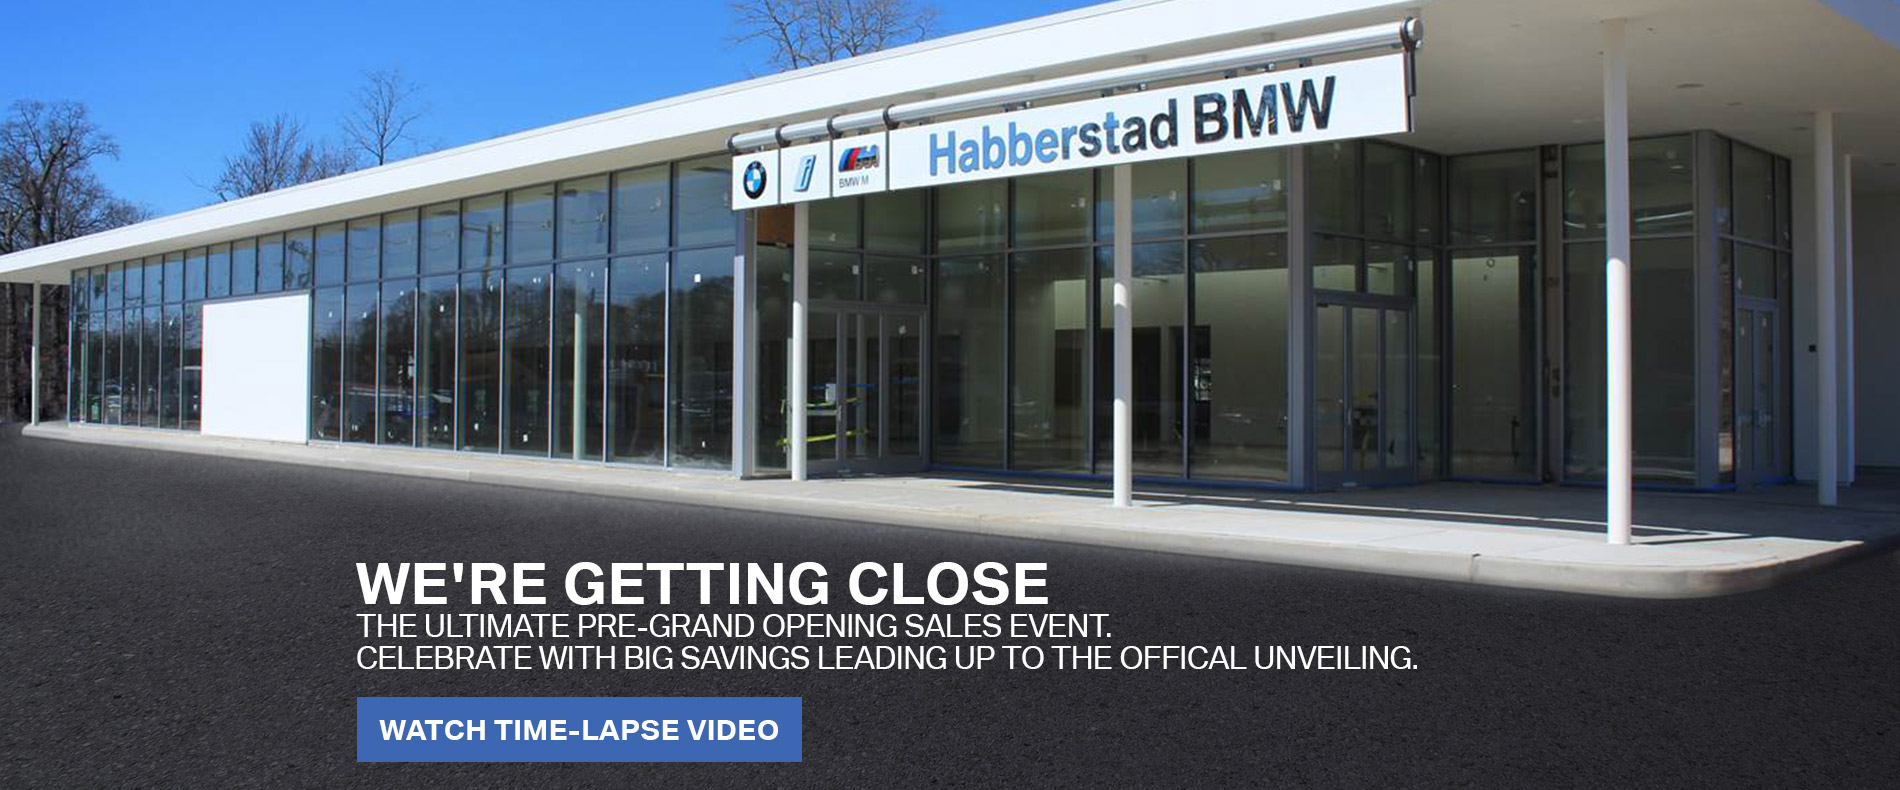 Habberstad BMW New Building.png